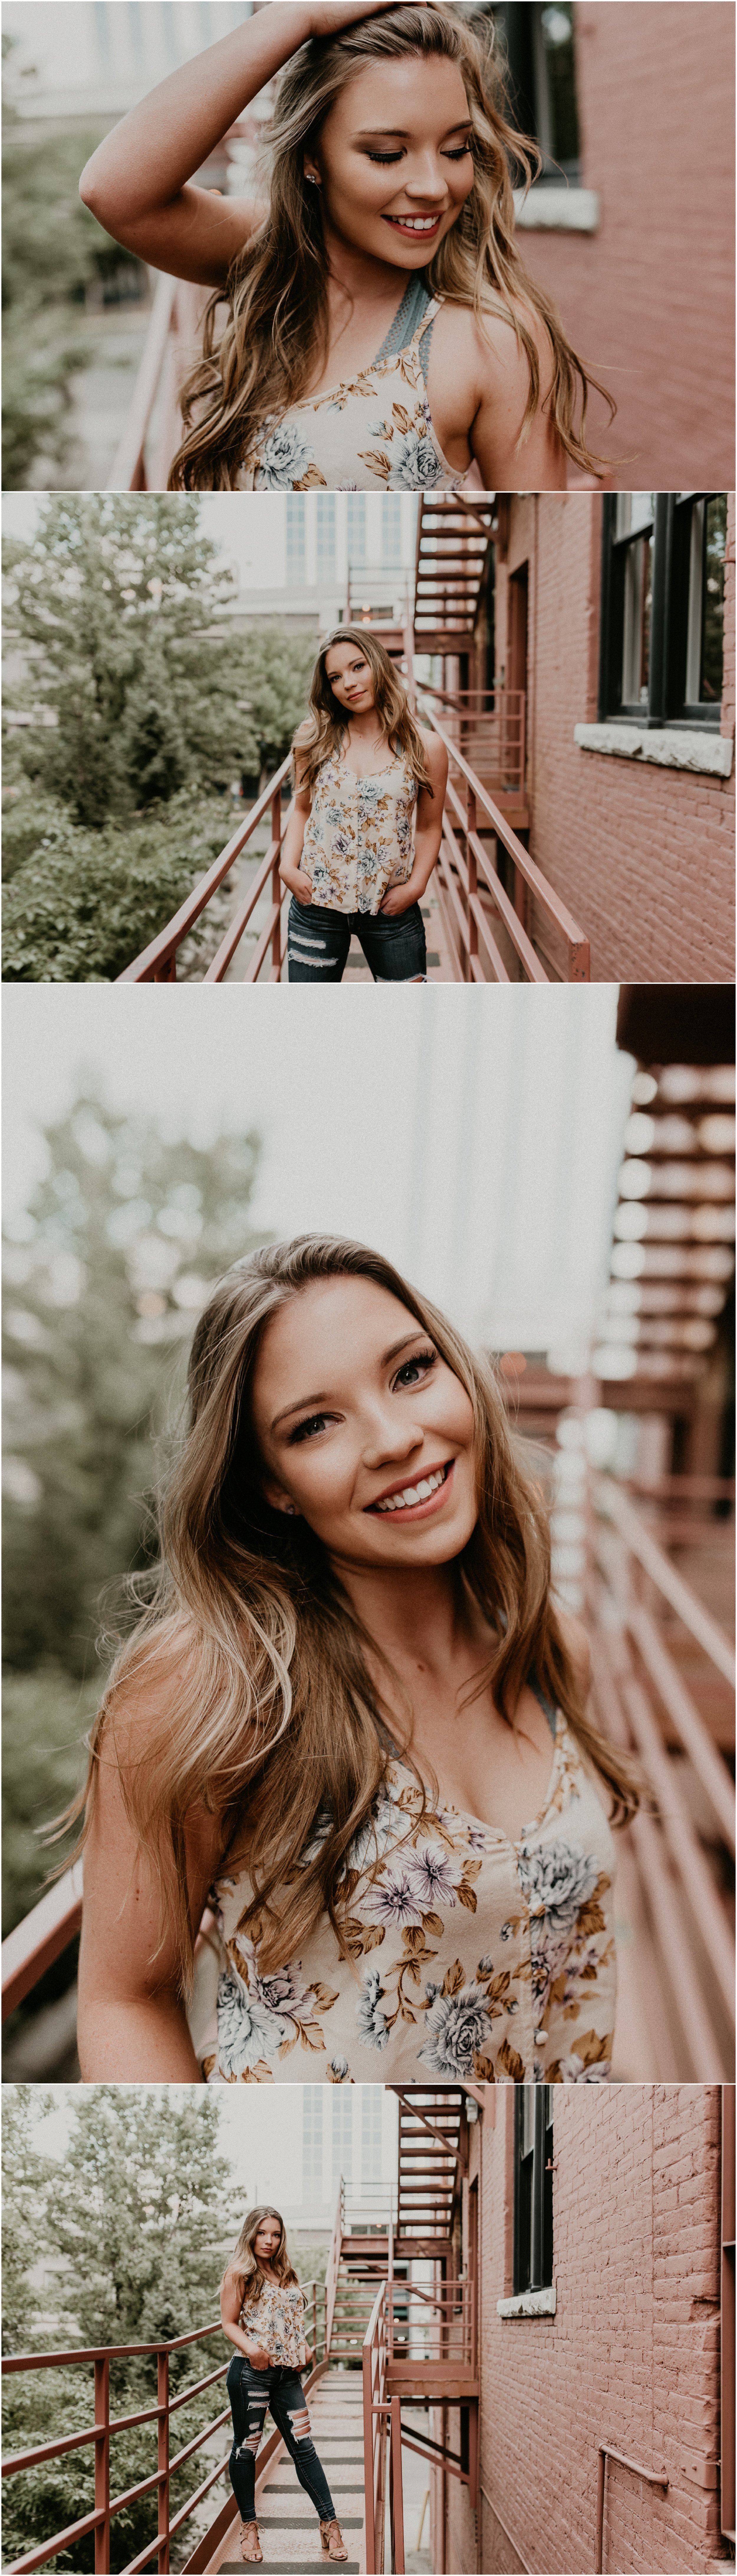 Makayla Madden Photography Boise Senior Photographer Fall Senior Pictures Urban Downtown Boise Outfit Location Ideas